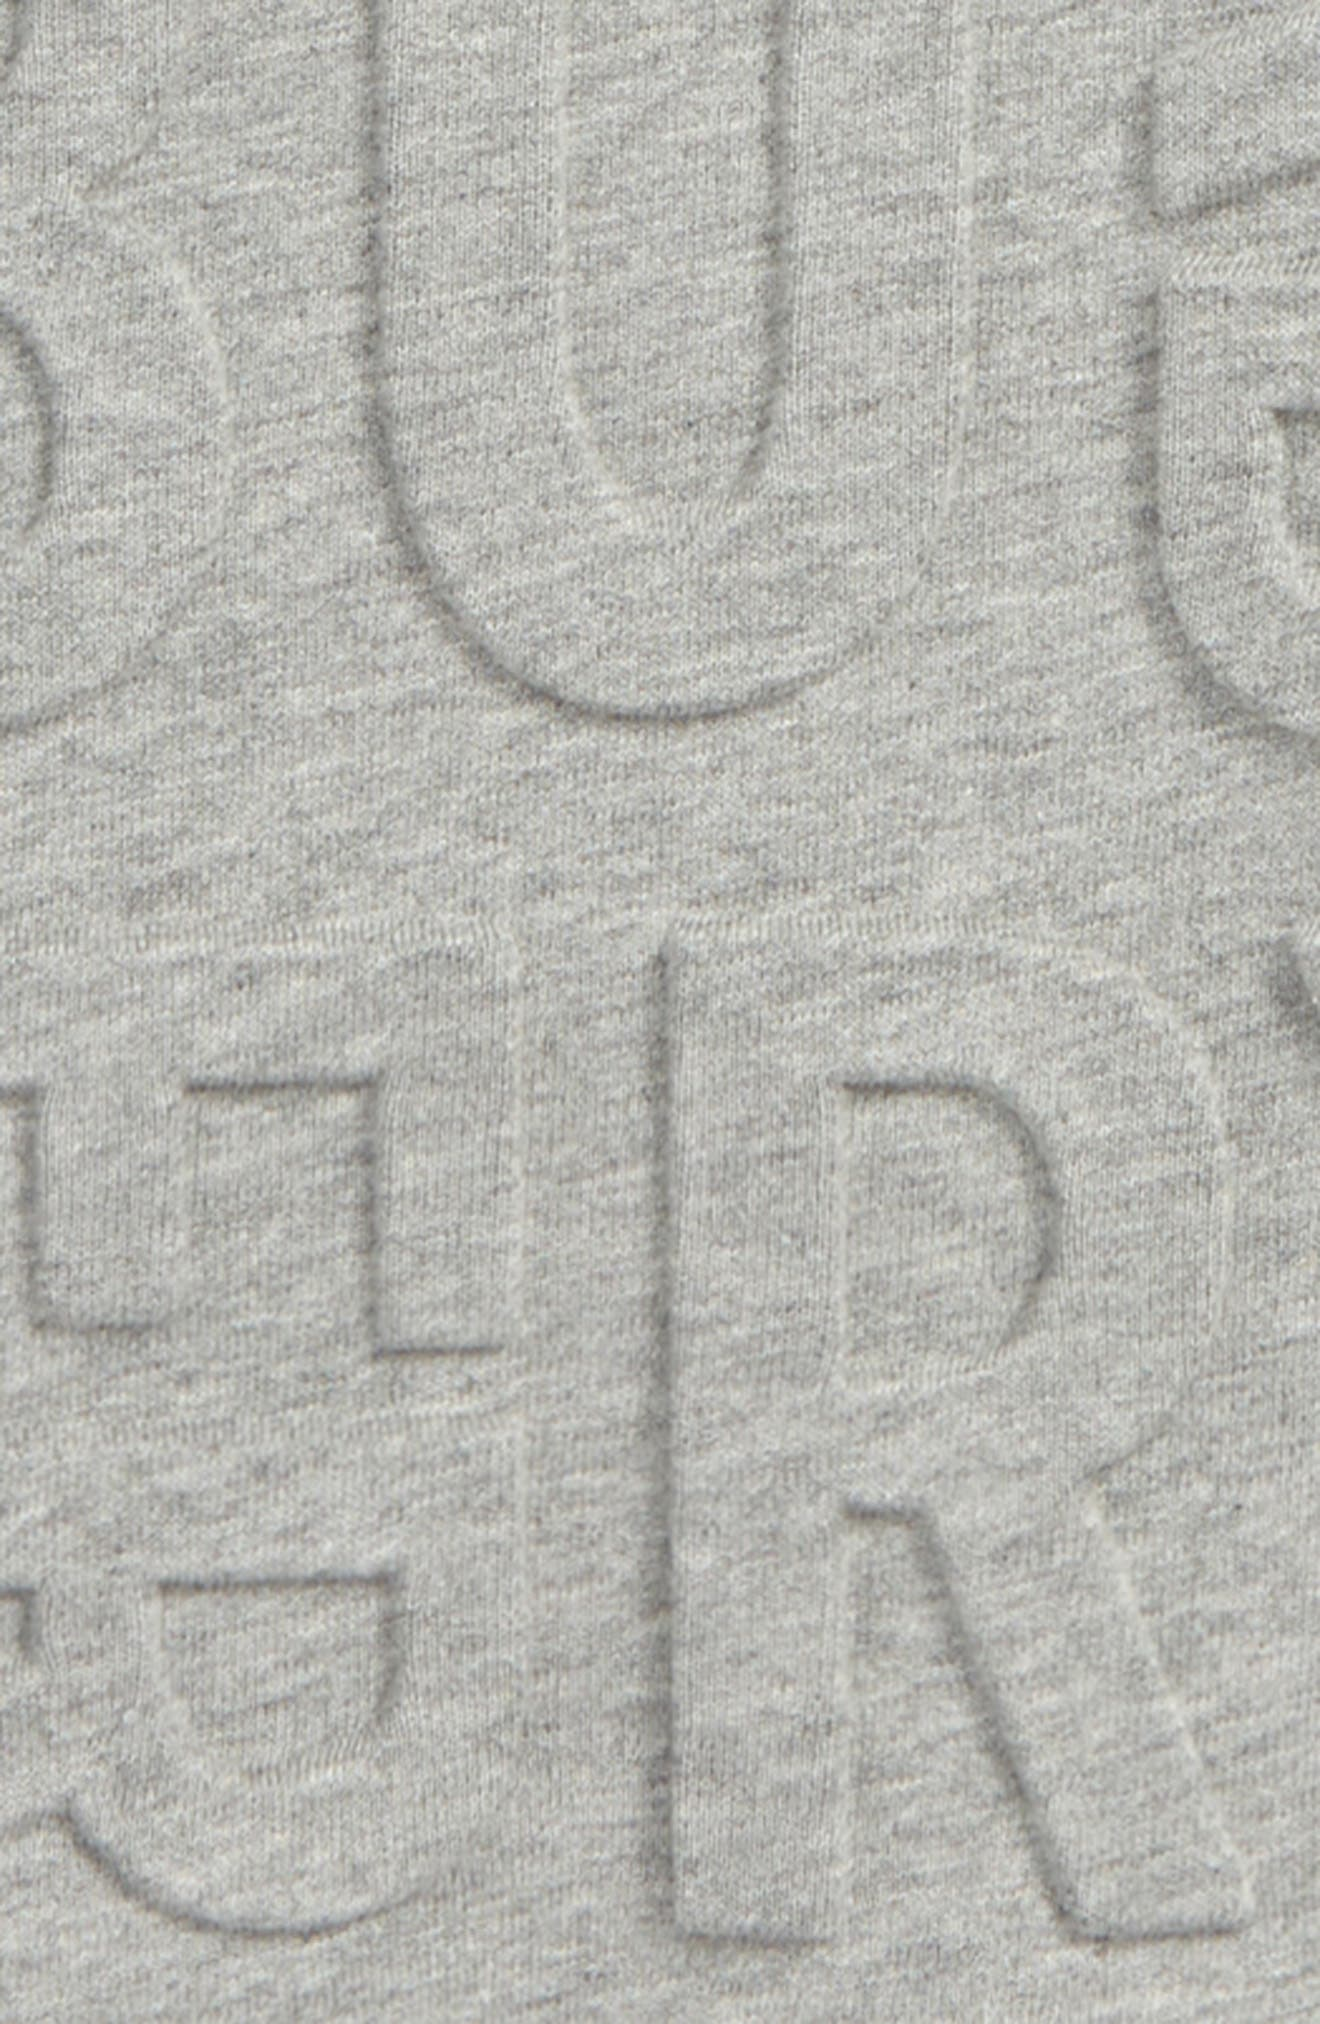 Hank Embossed Sweatshirt,                             Alternate thumbnail 2, color,                             GREY MELANGE